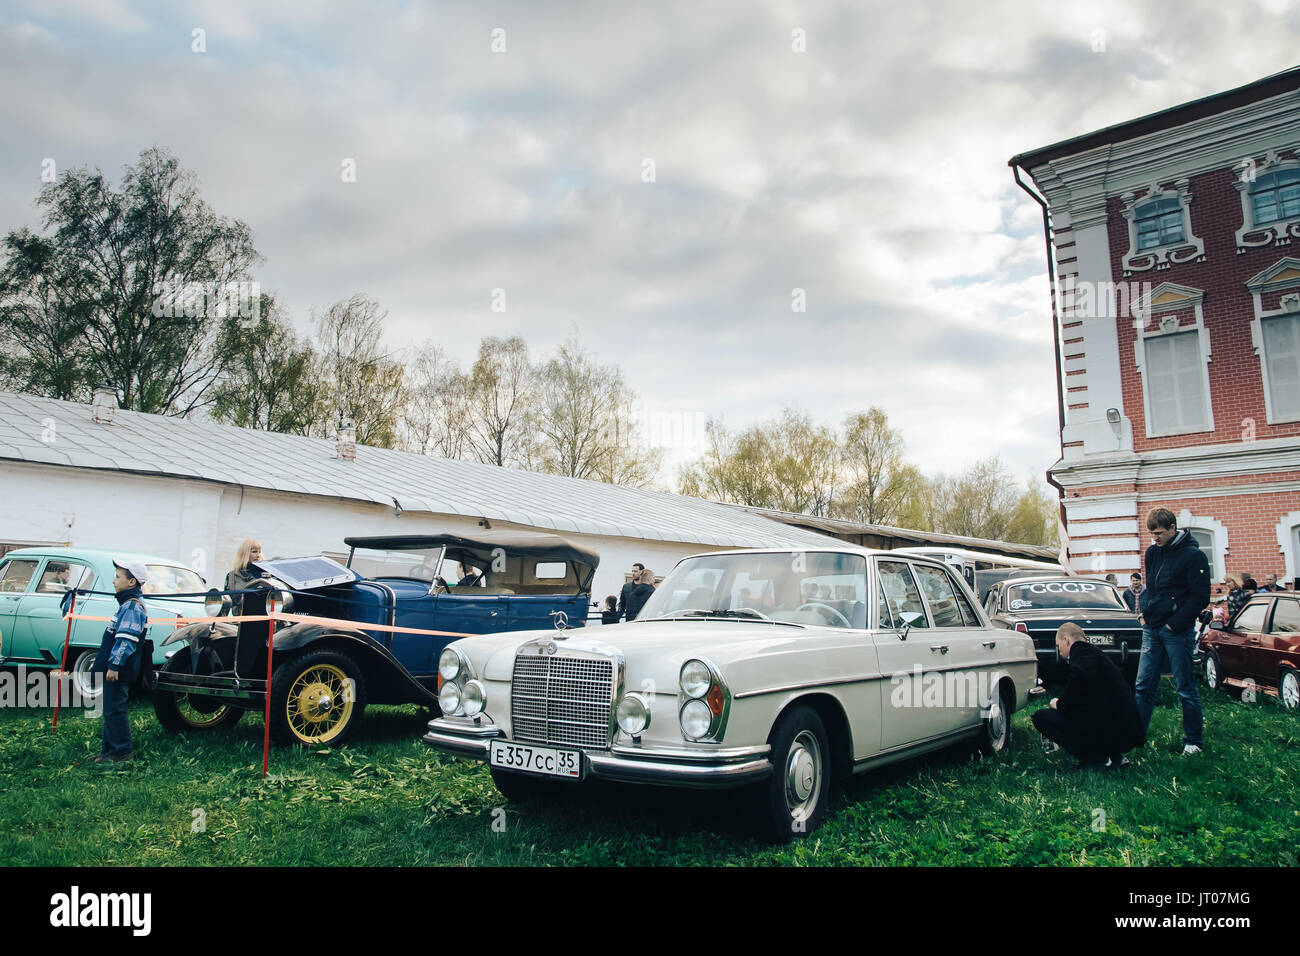 Exhibition of retro cars - Stock Image